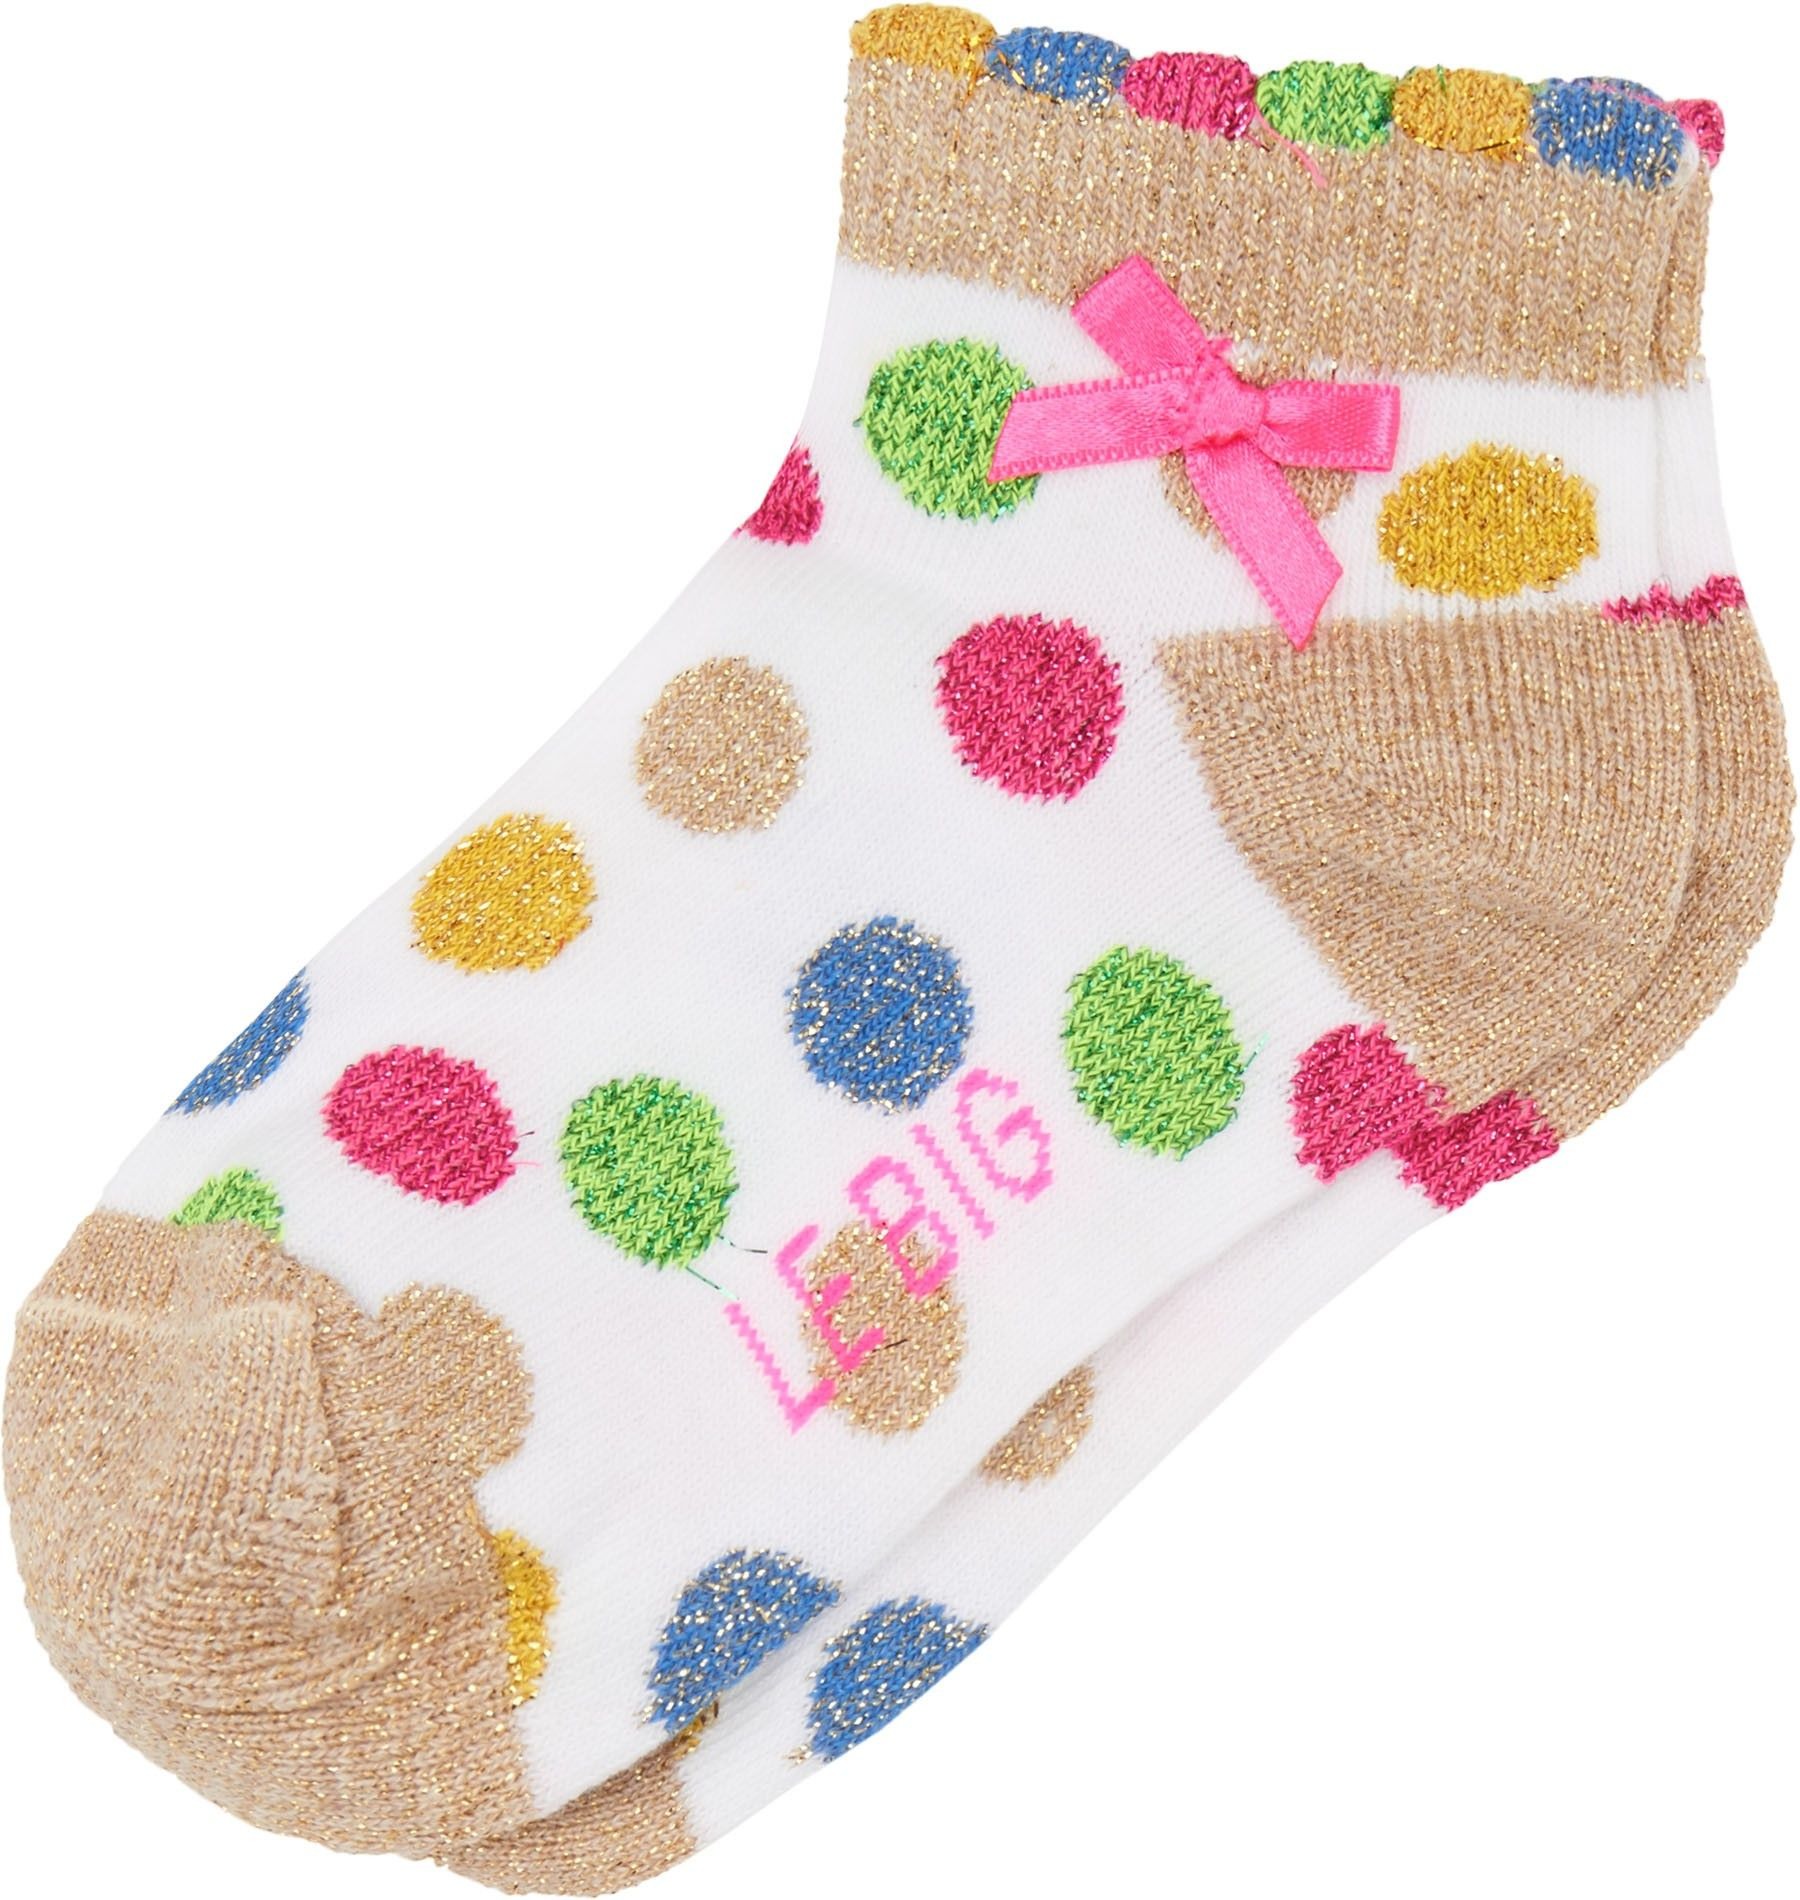 Shop The Le Big Girls Dot 2-Pack Socks In Pink At Elias & Grace. Browse The Cutest Girls Clothes From Premium Designers, Handpicked By Elias & Grace